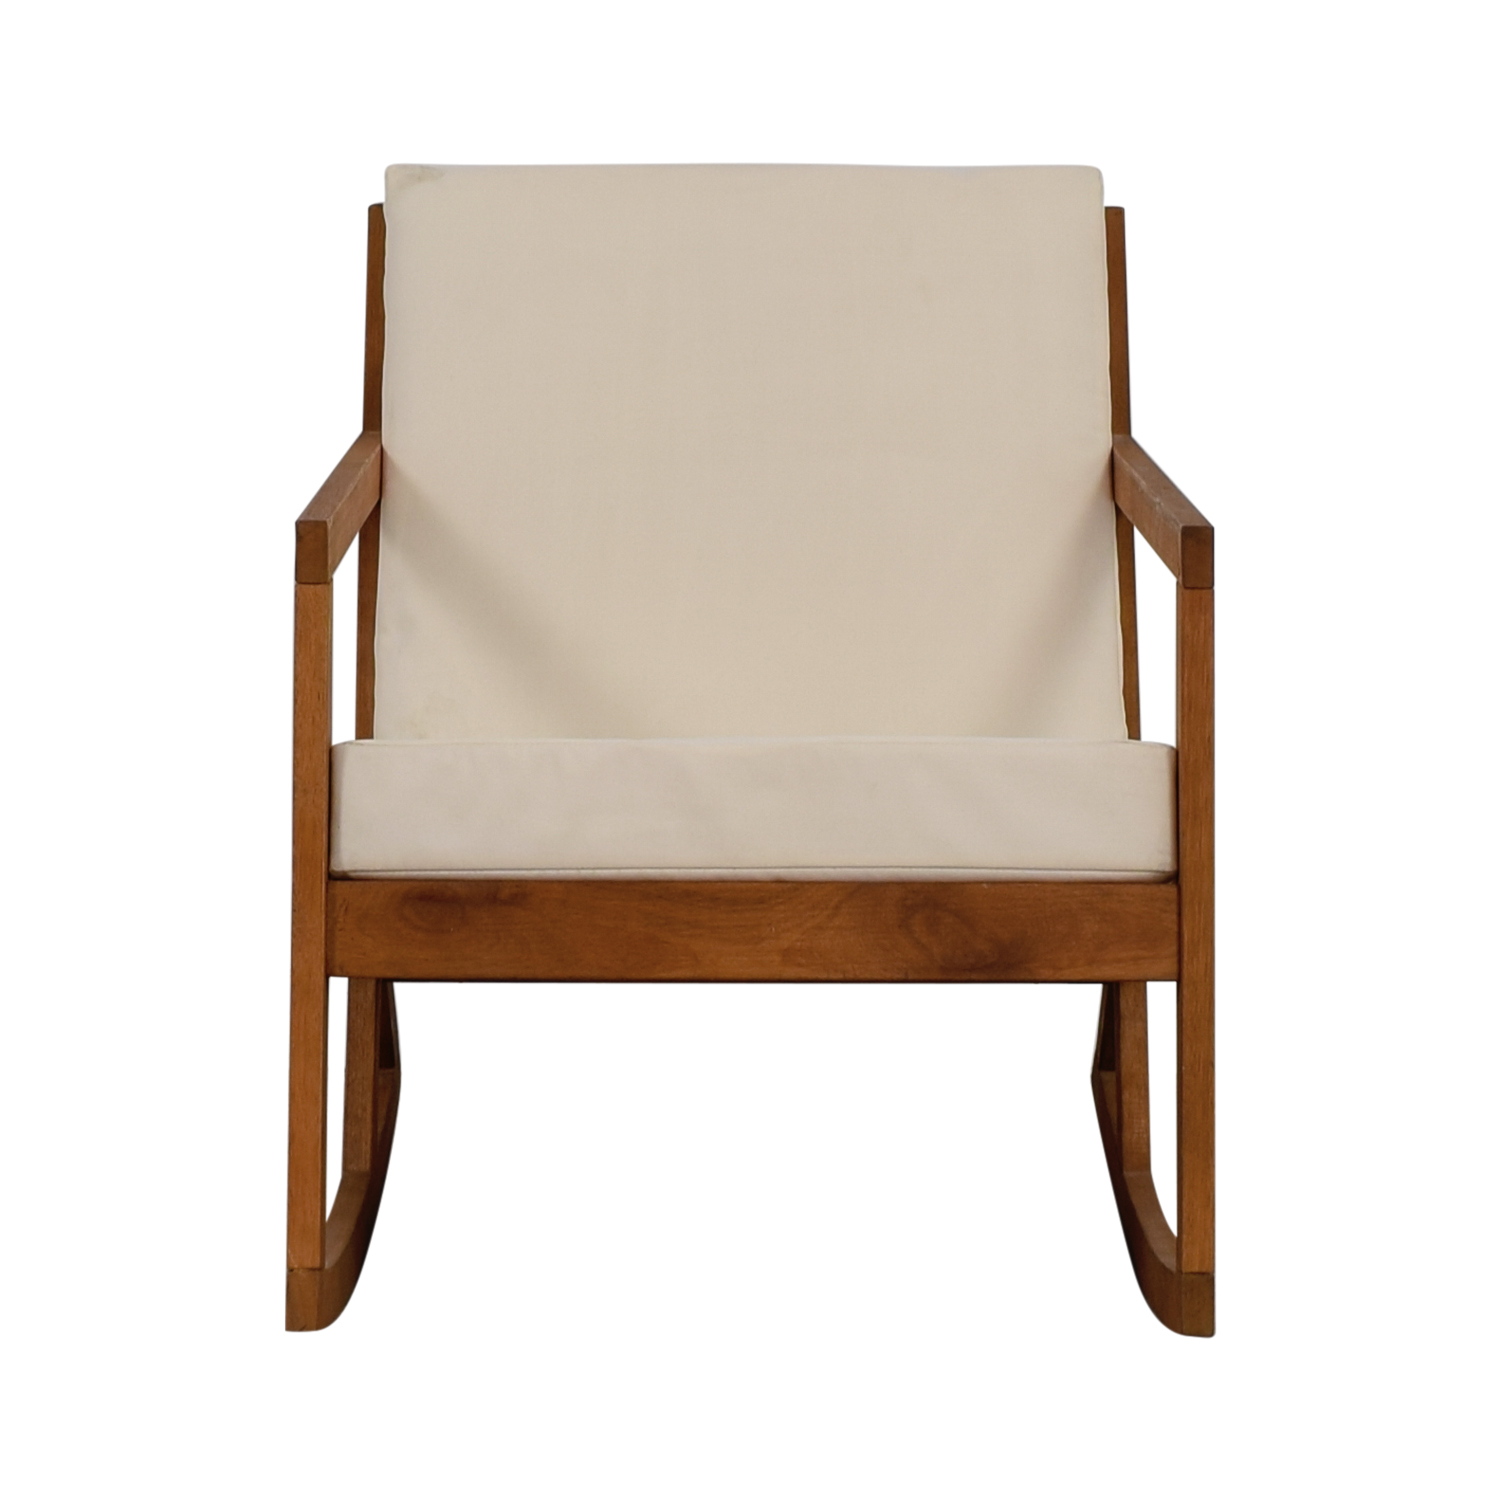 shop Safavieh White Upholstered Wood Rocking Chair Safavieh